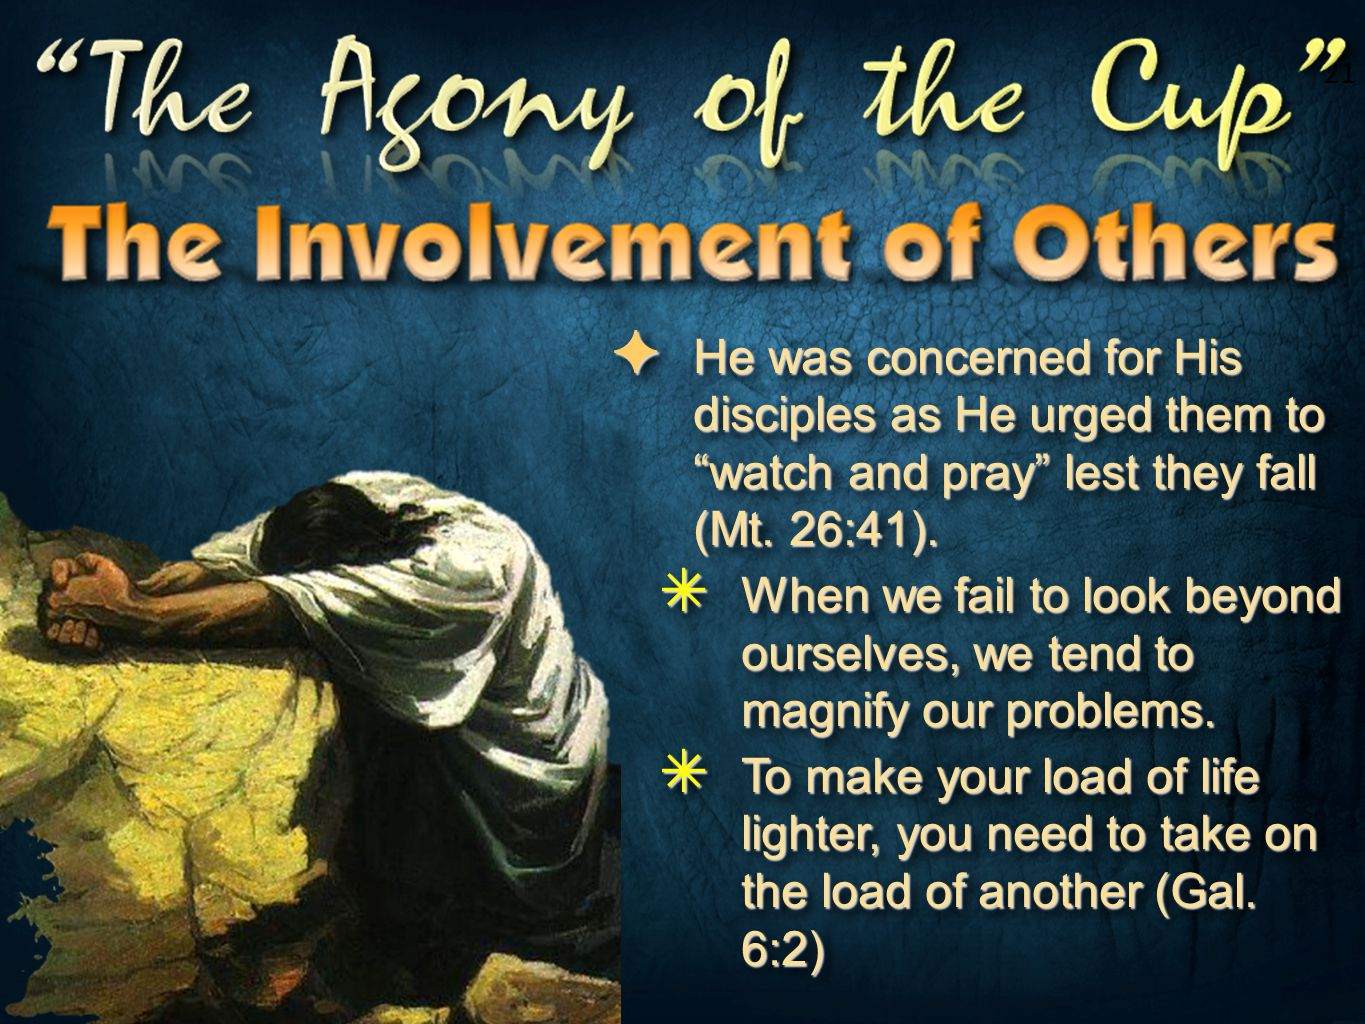 21 He was concerned for His disciples as He urged them to watch and pray lest they fall (Mt. 26:41).